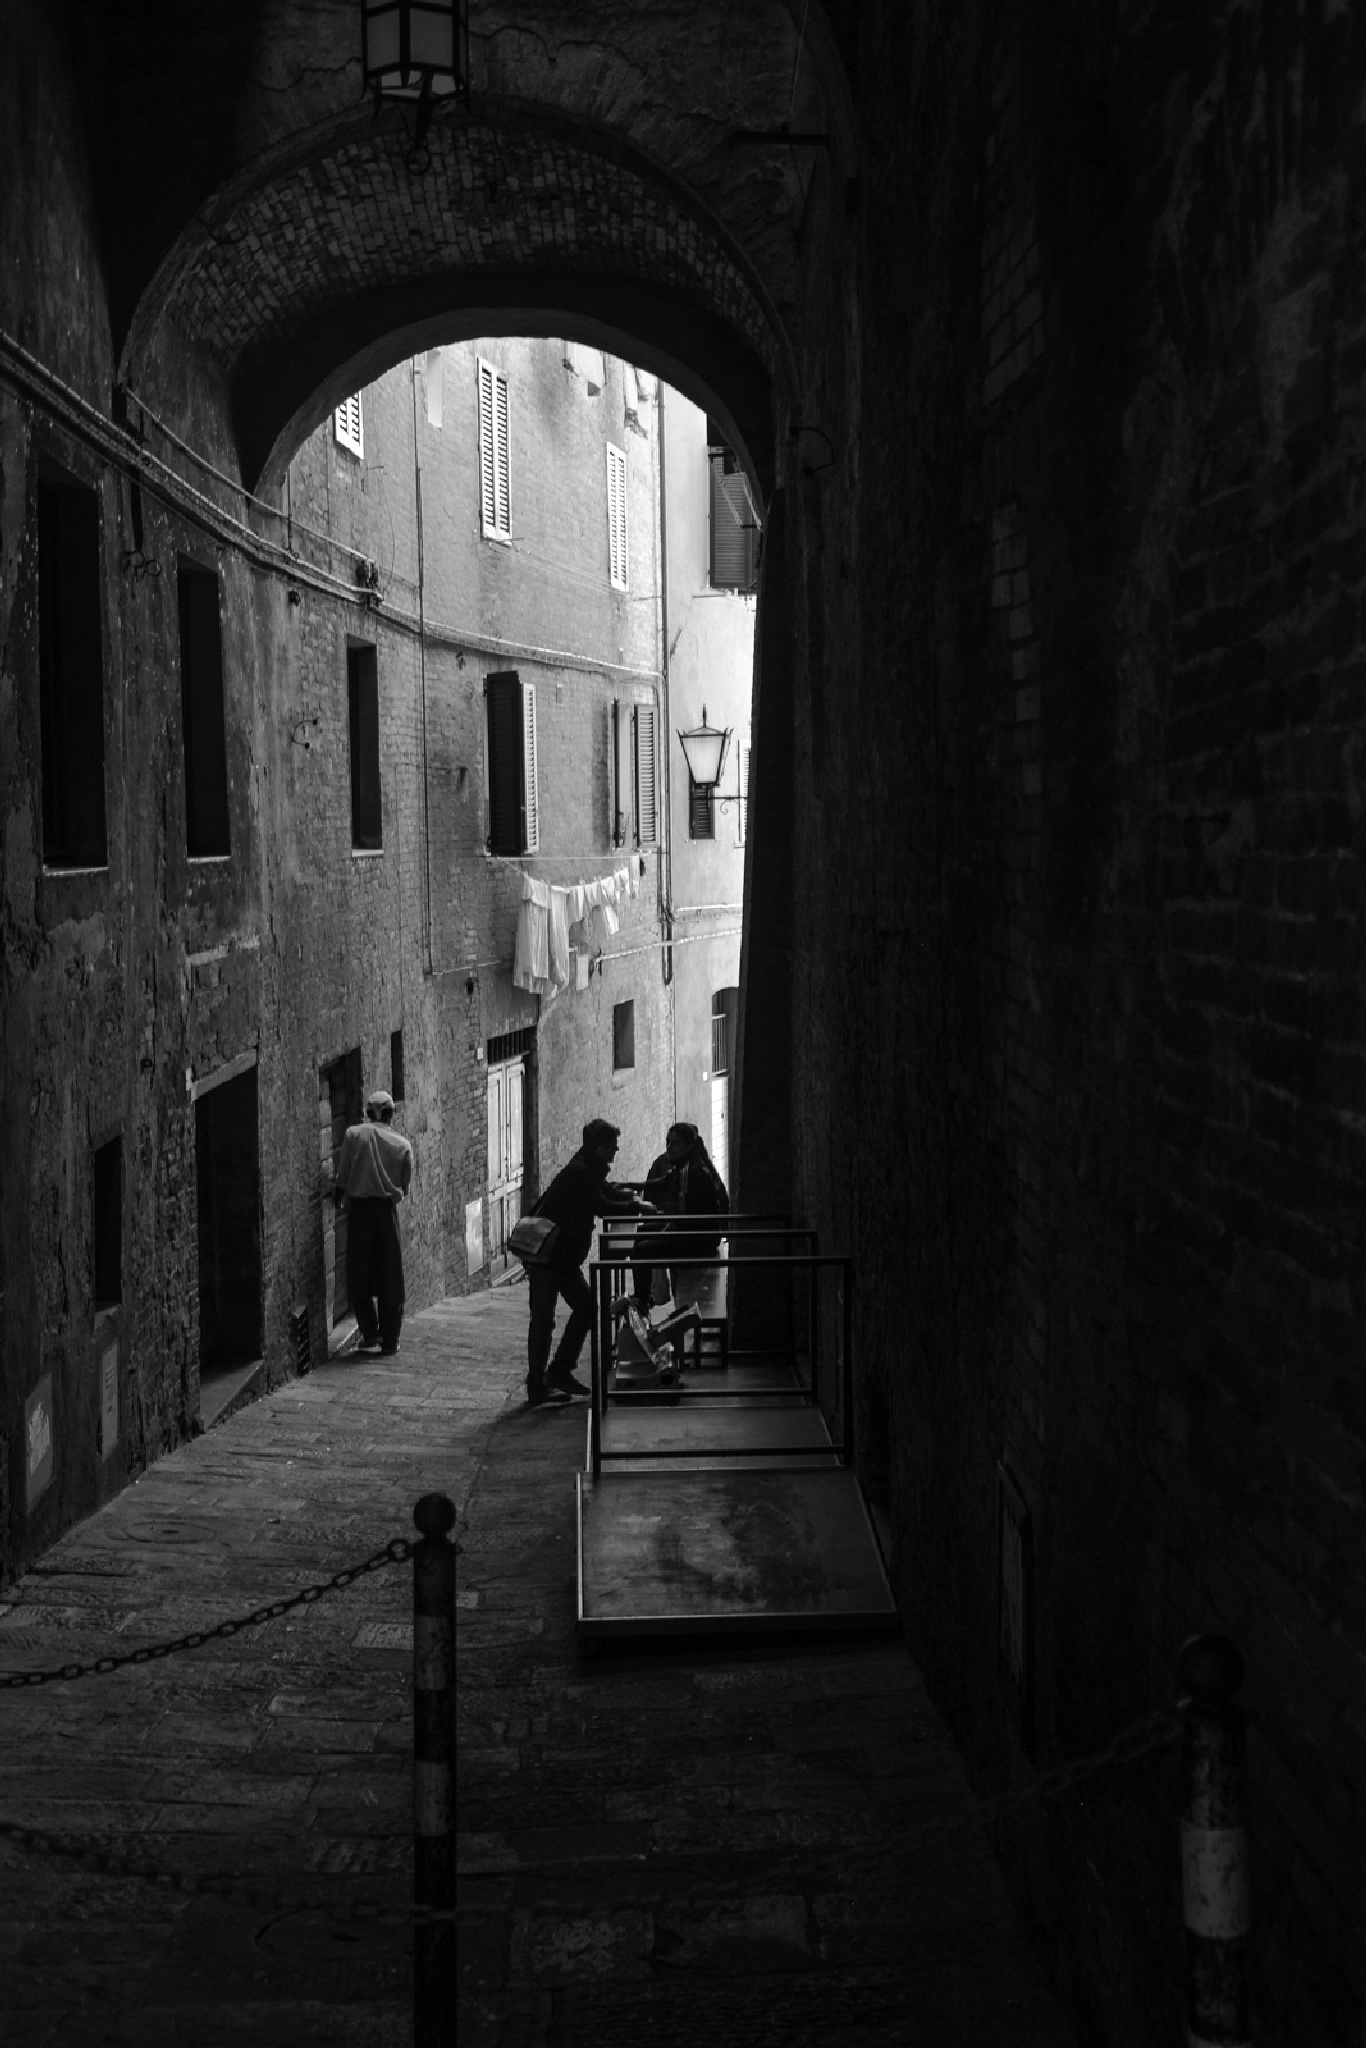 Siena light by heinz homatsch